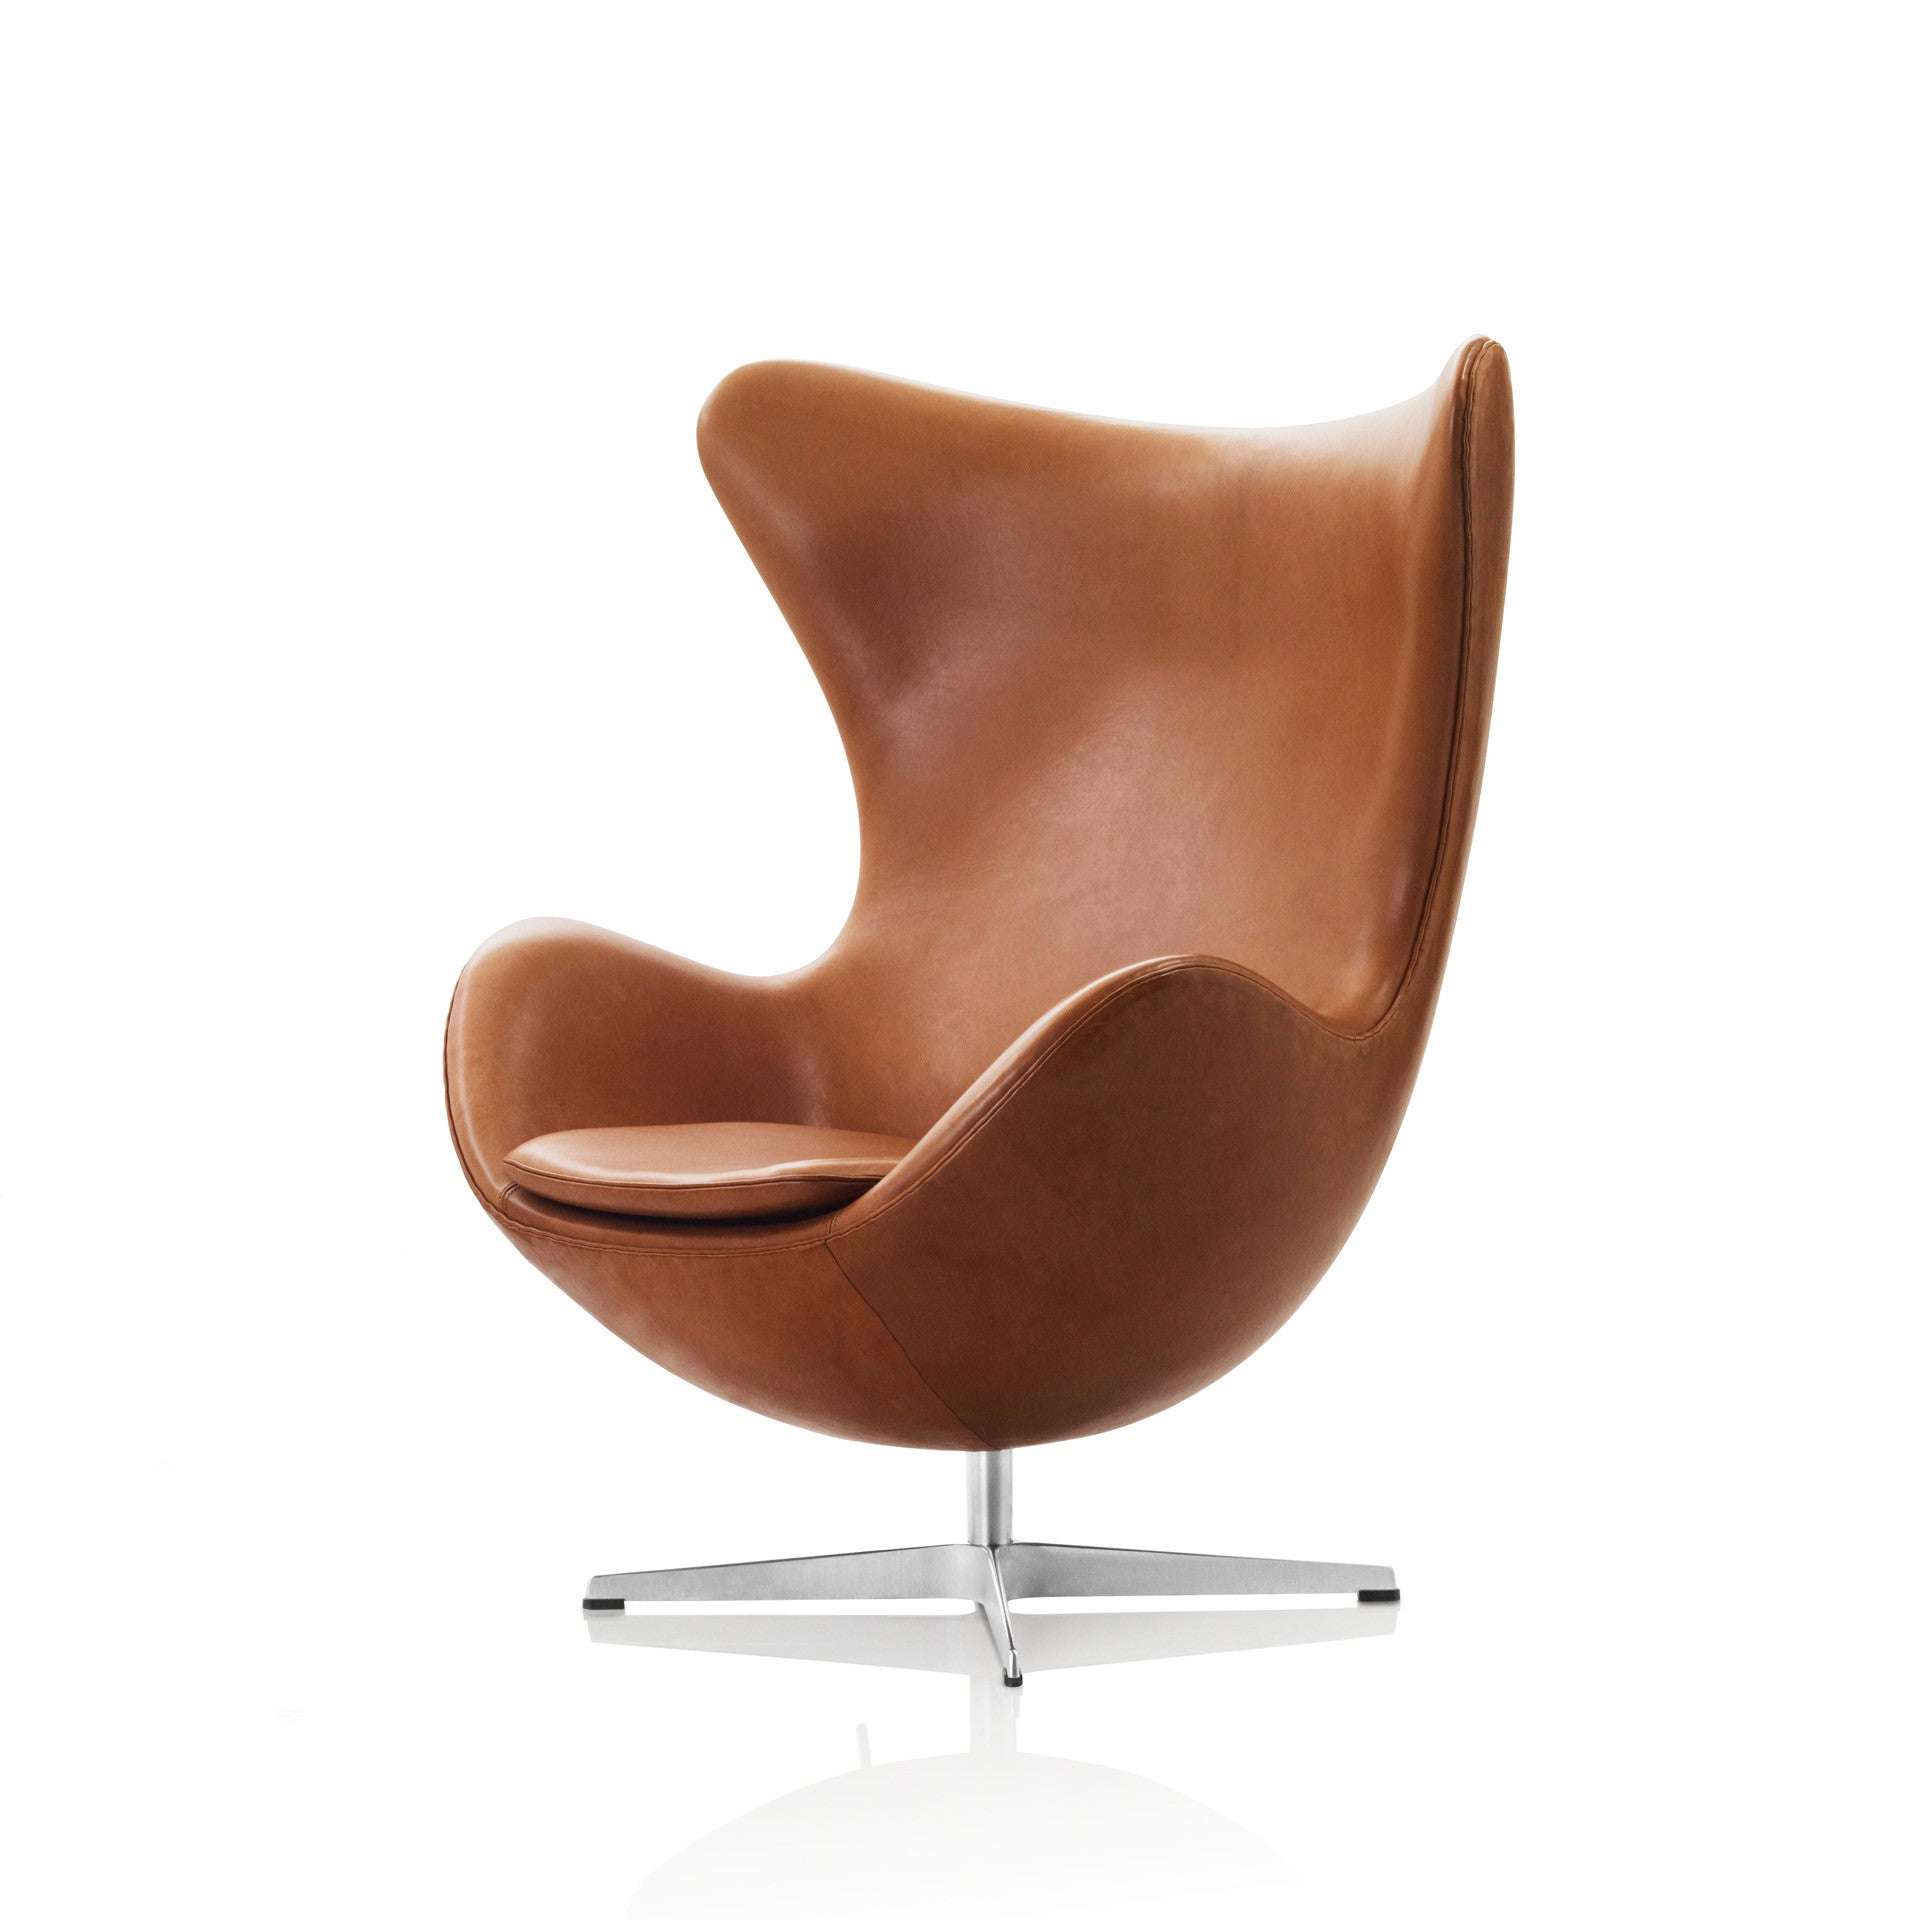 Arne jacobsen egg chair leather - Arne Jacobsen Egg Chair Caramel Leather